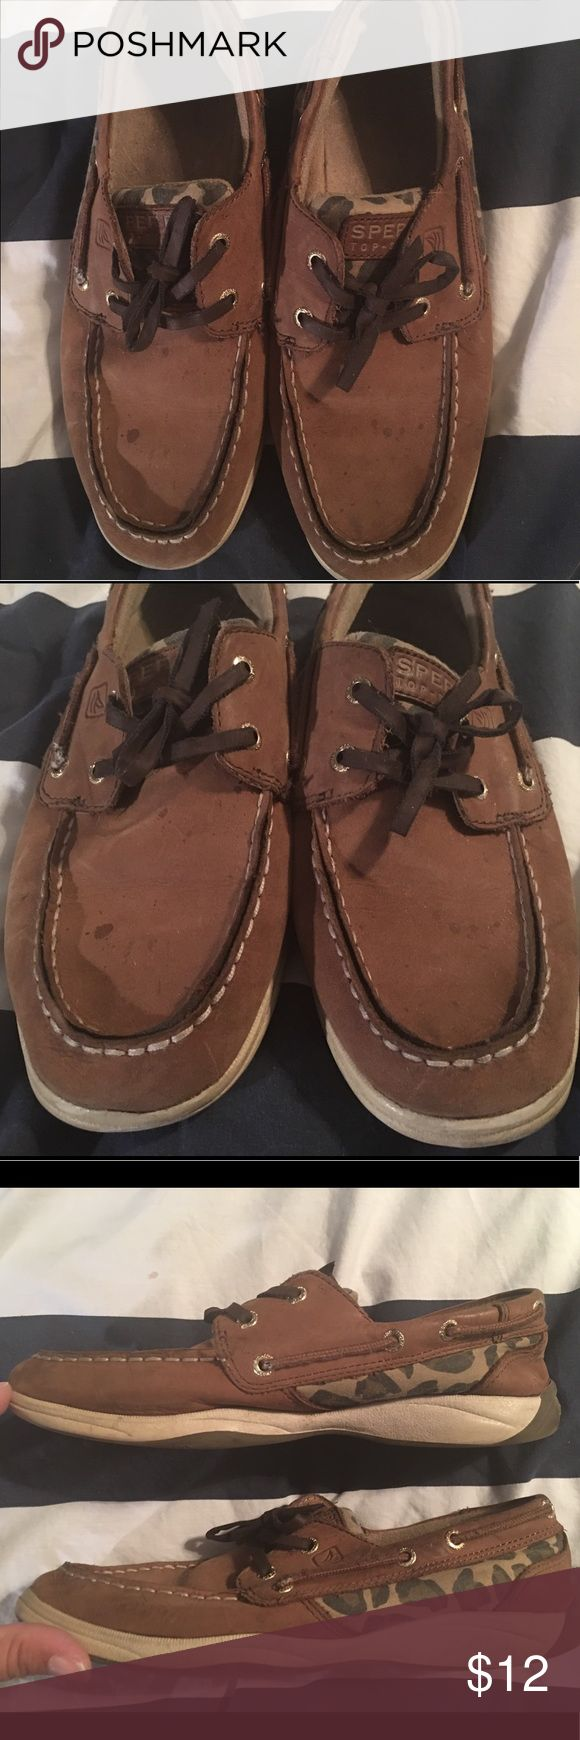 Sperry Topsider leopard print shoes Adorable leopard print sperry topsiders. A couple small spot as pictured and some wear on the sole but otherwise in amazing condition. Sperry Top-Sider Shoes